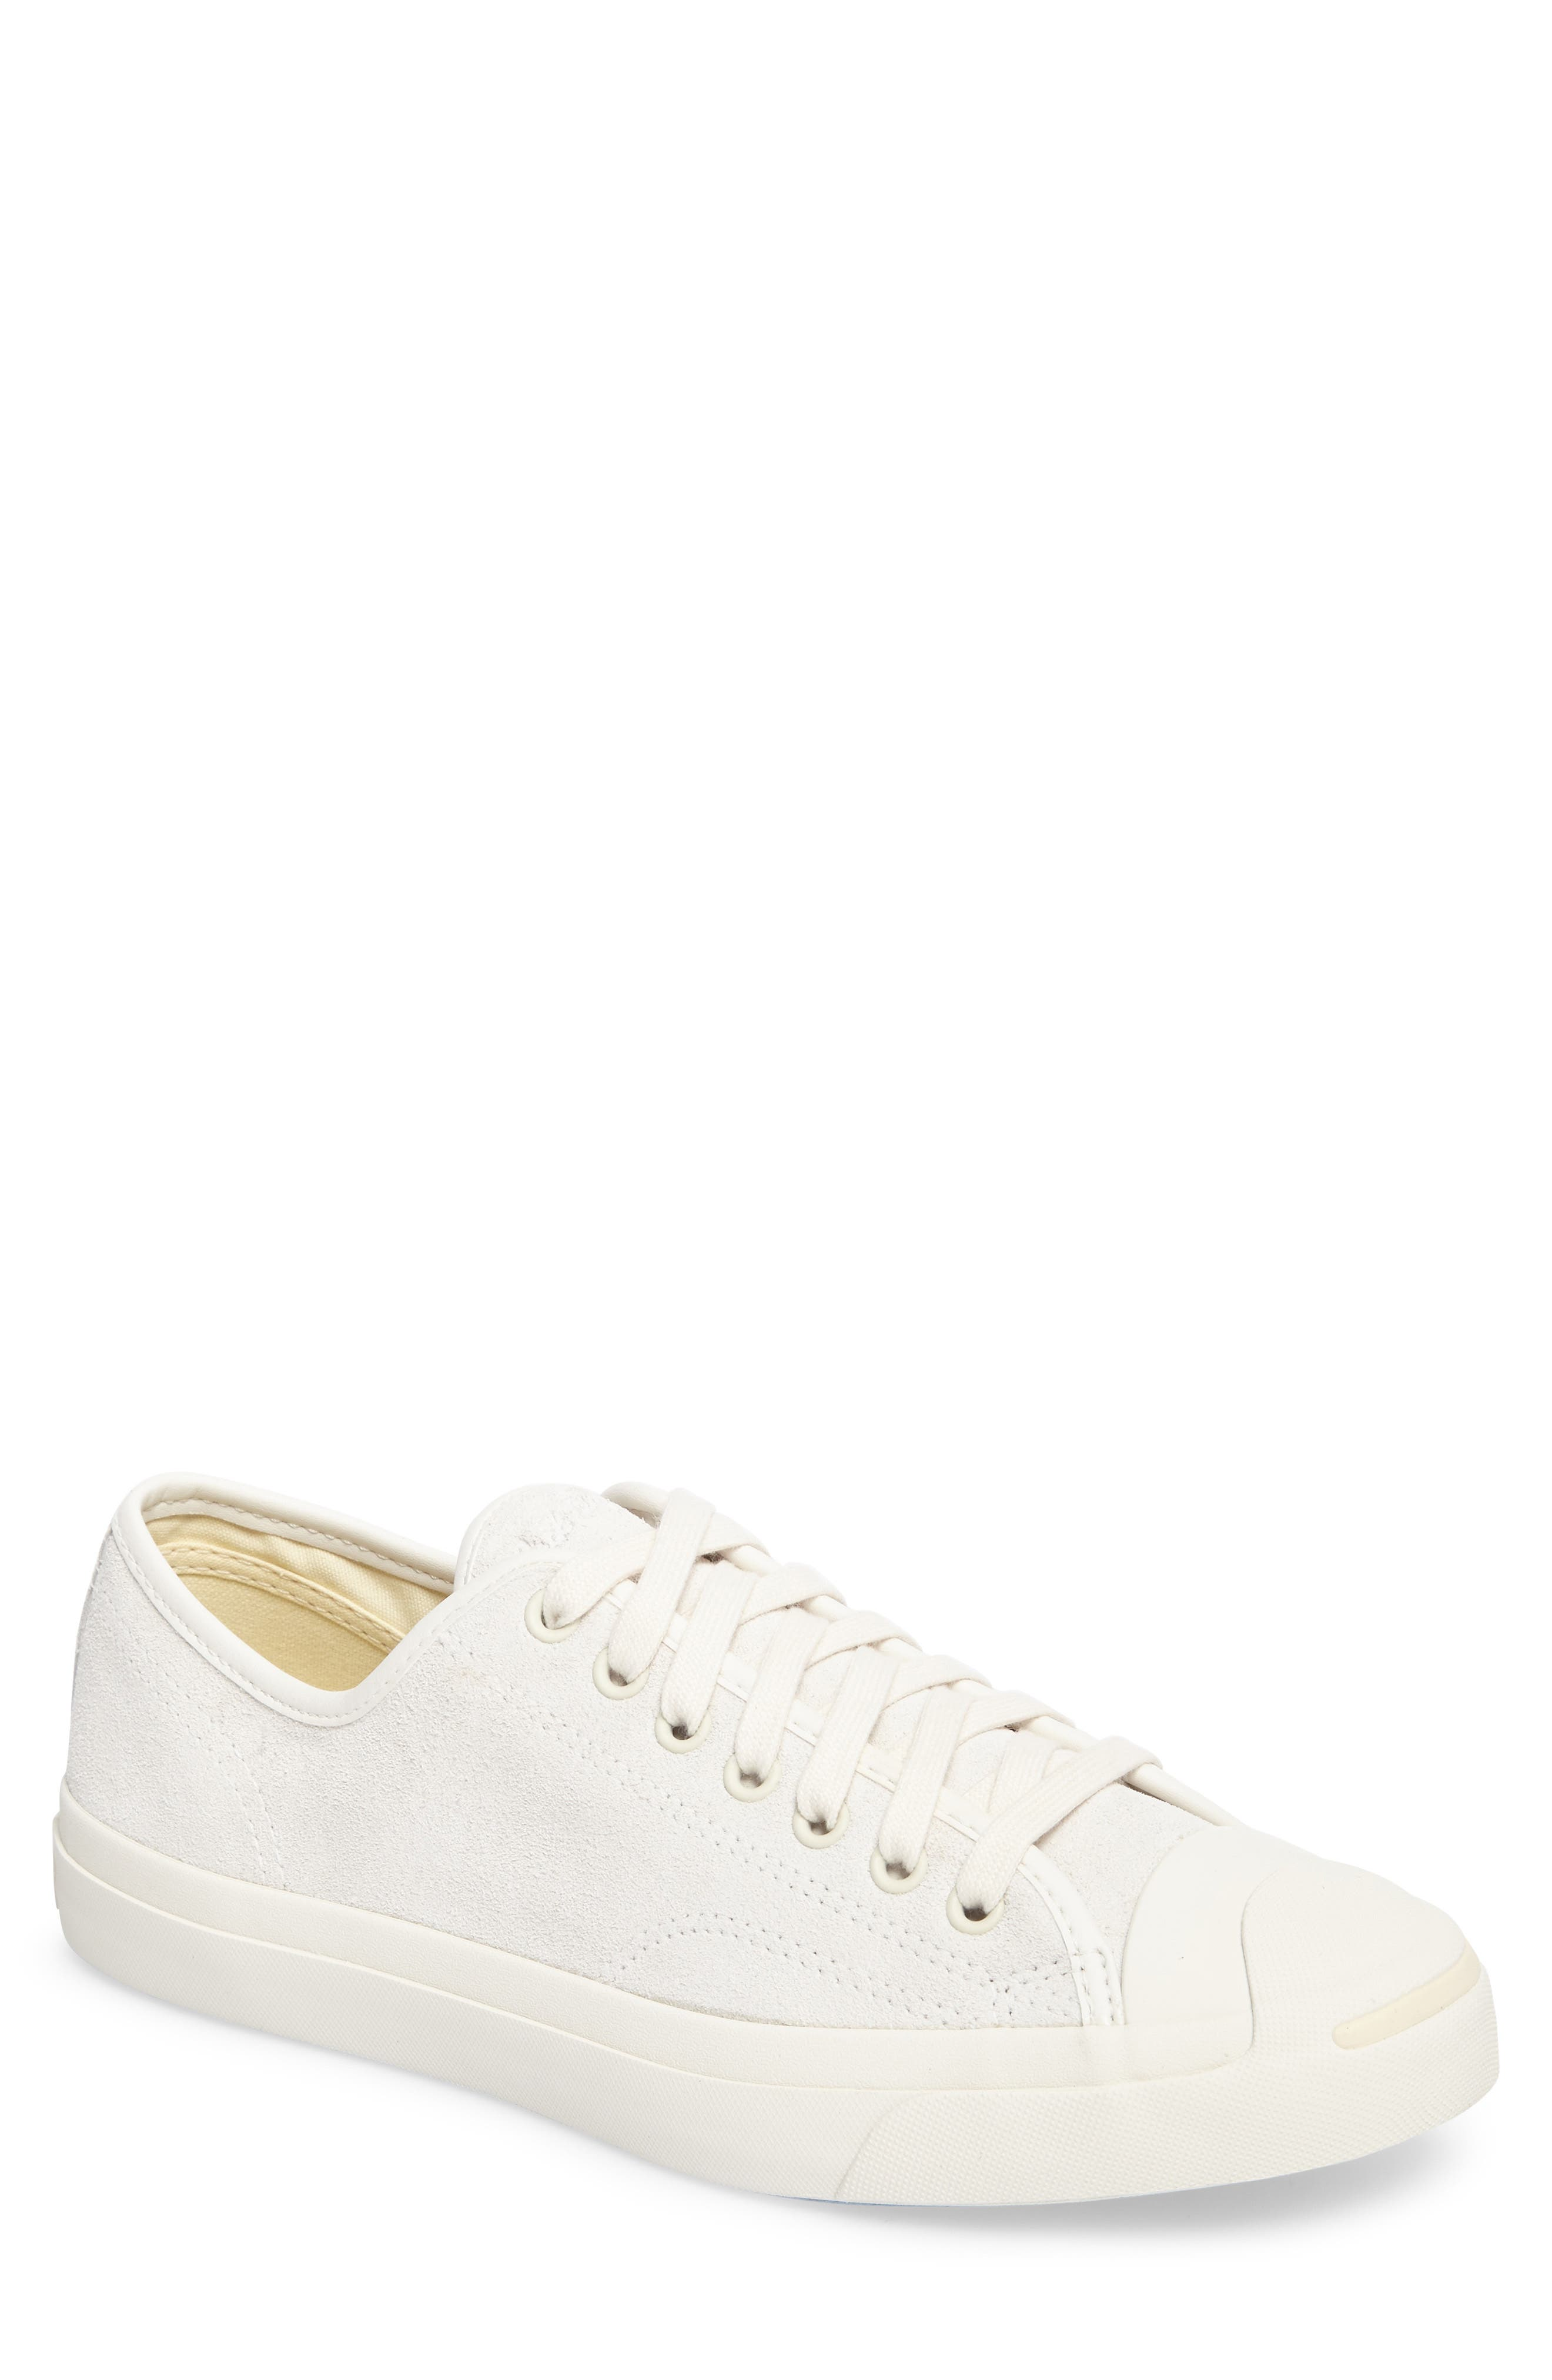 Jack Purcell Sneaker,                         Main,                         color, 020